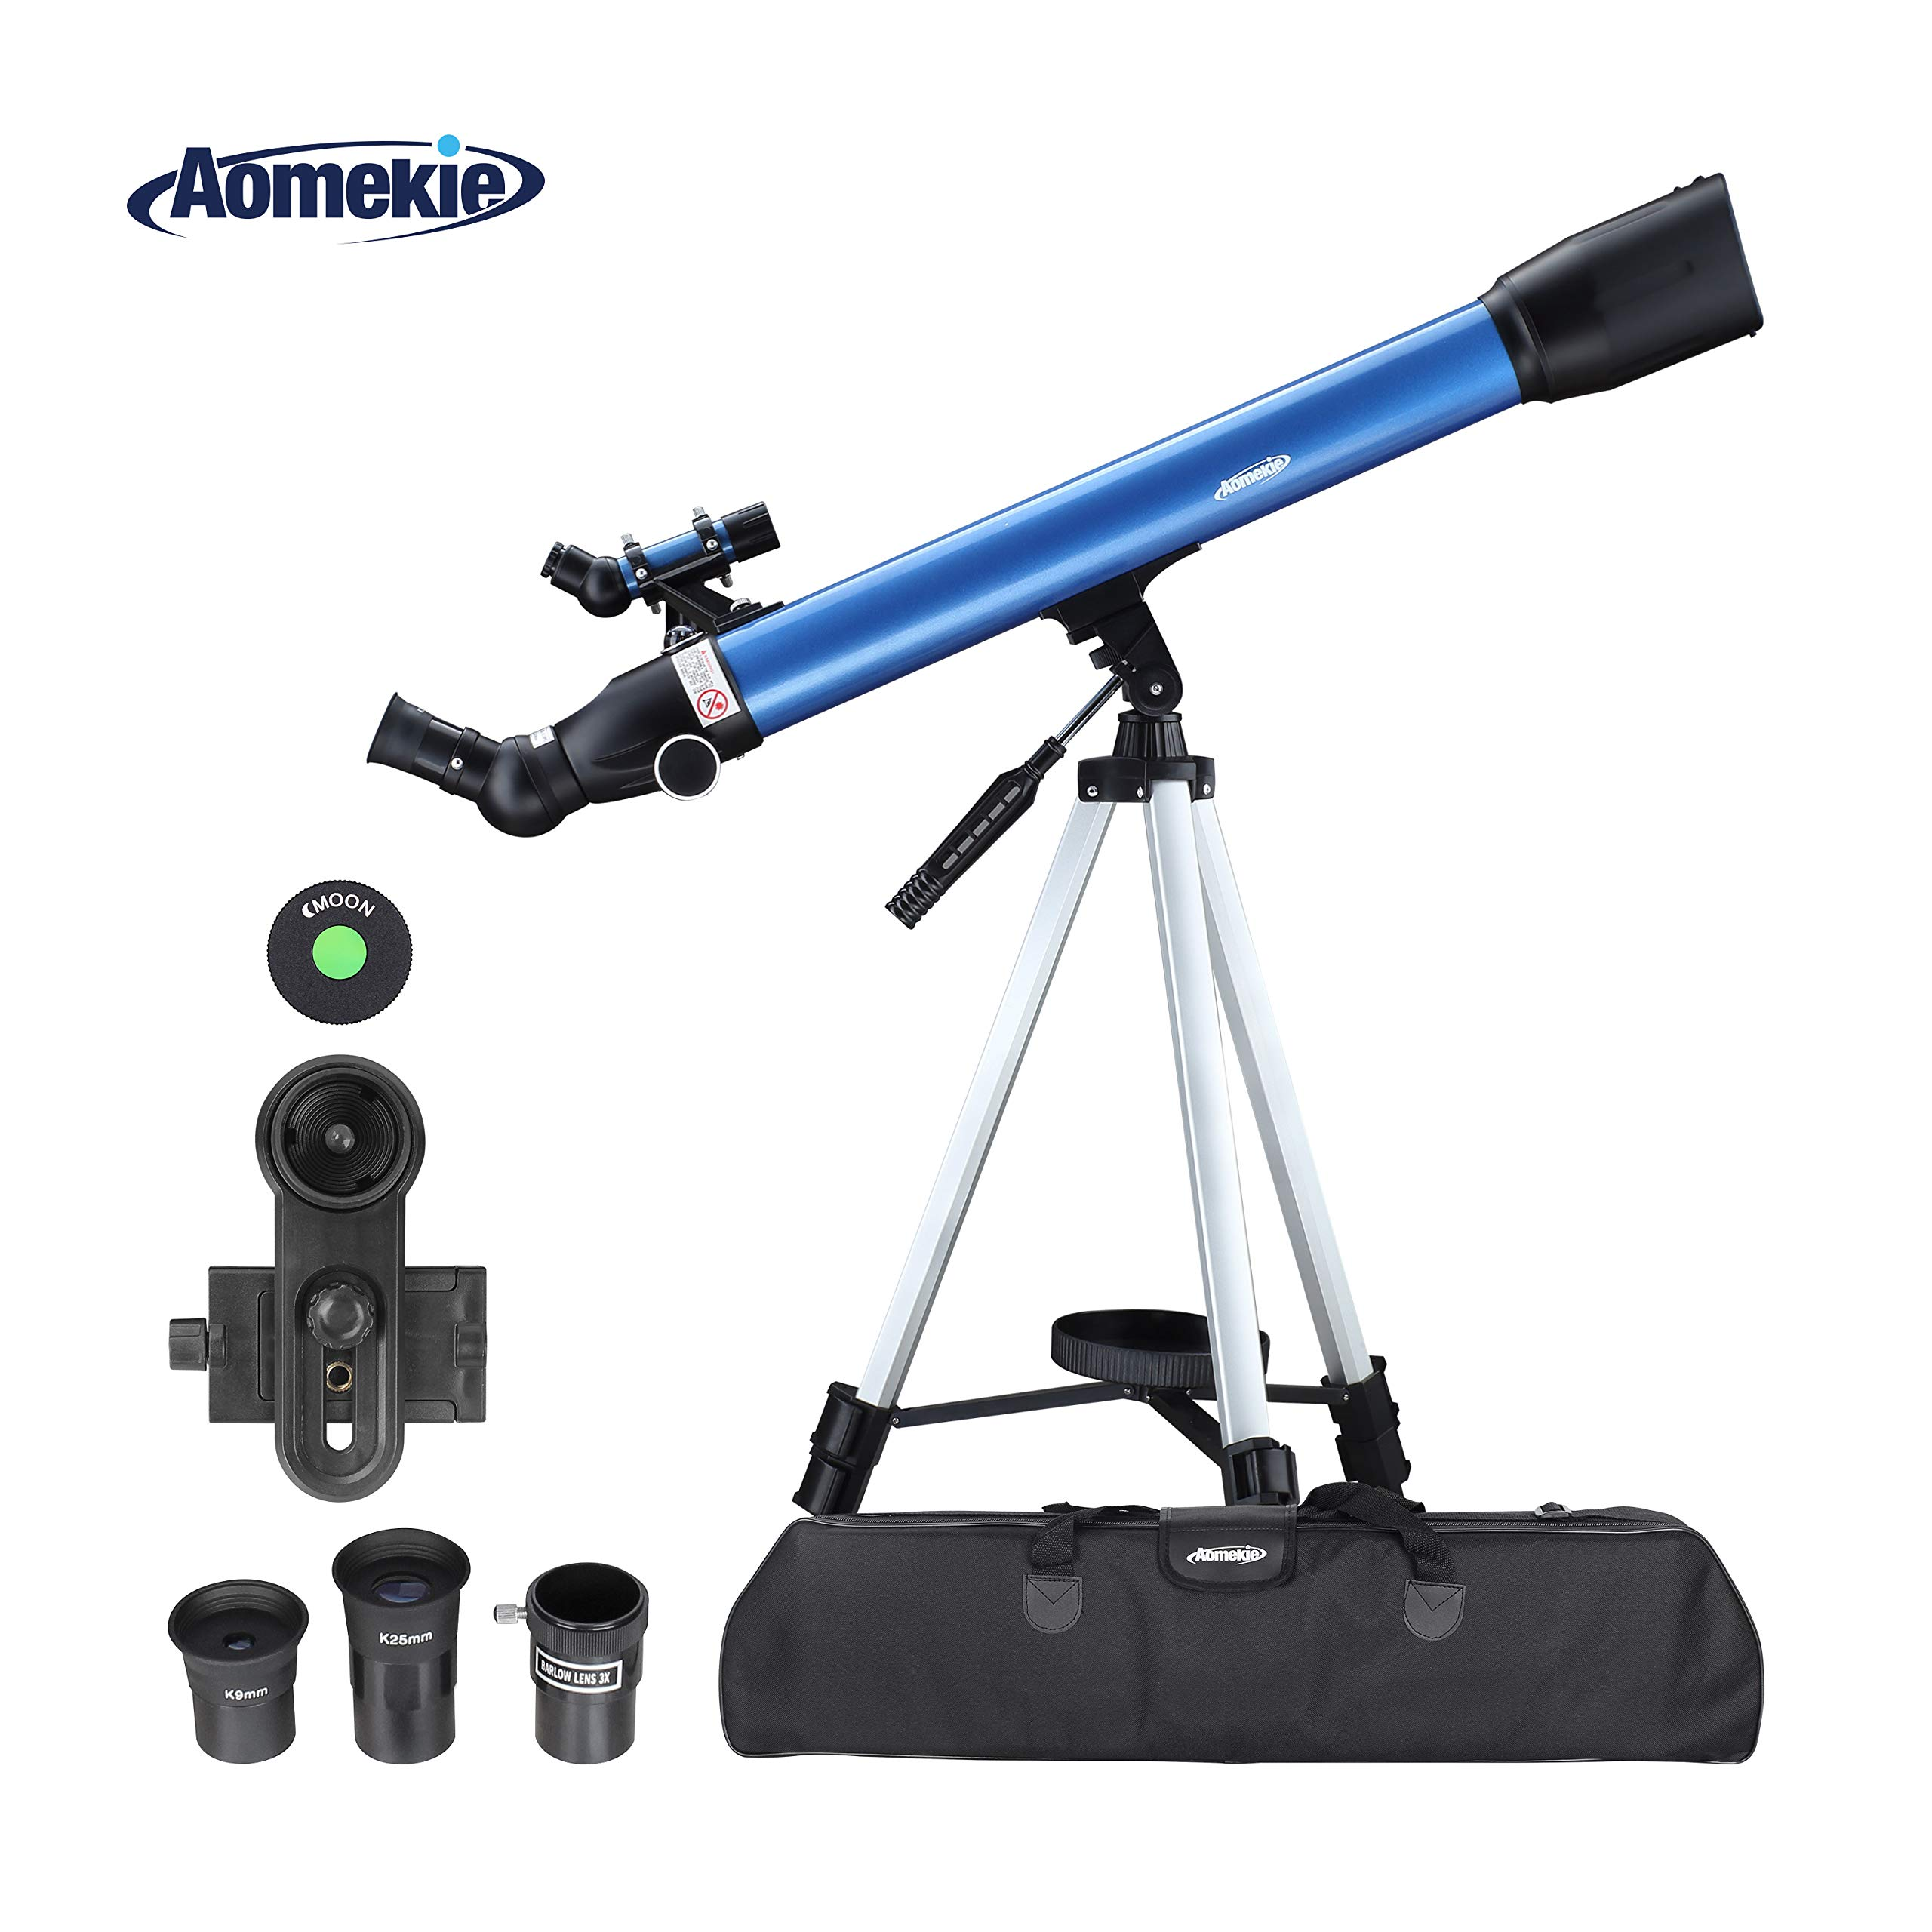 Aomekie Telescope for Adults Astronomy Beginners 700mm Focal Length 234X Magnification Travel Scope Refractor Telescopes with Adjustable Tripod 10X Phone Adapter Erect Finderscope and Carrying Bag by AOMEKIE